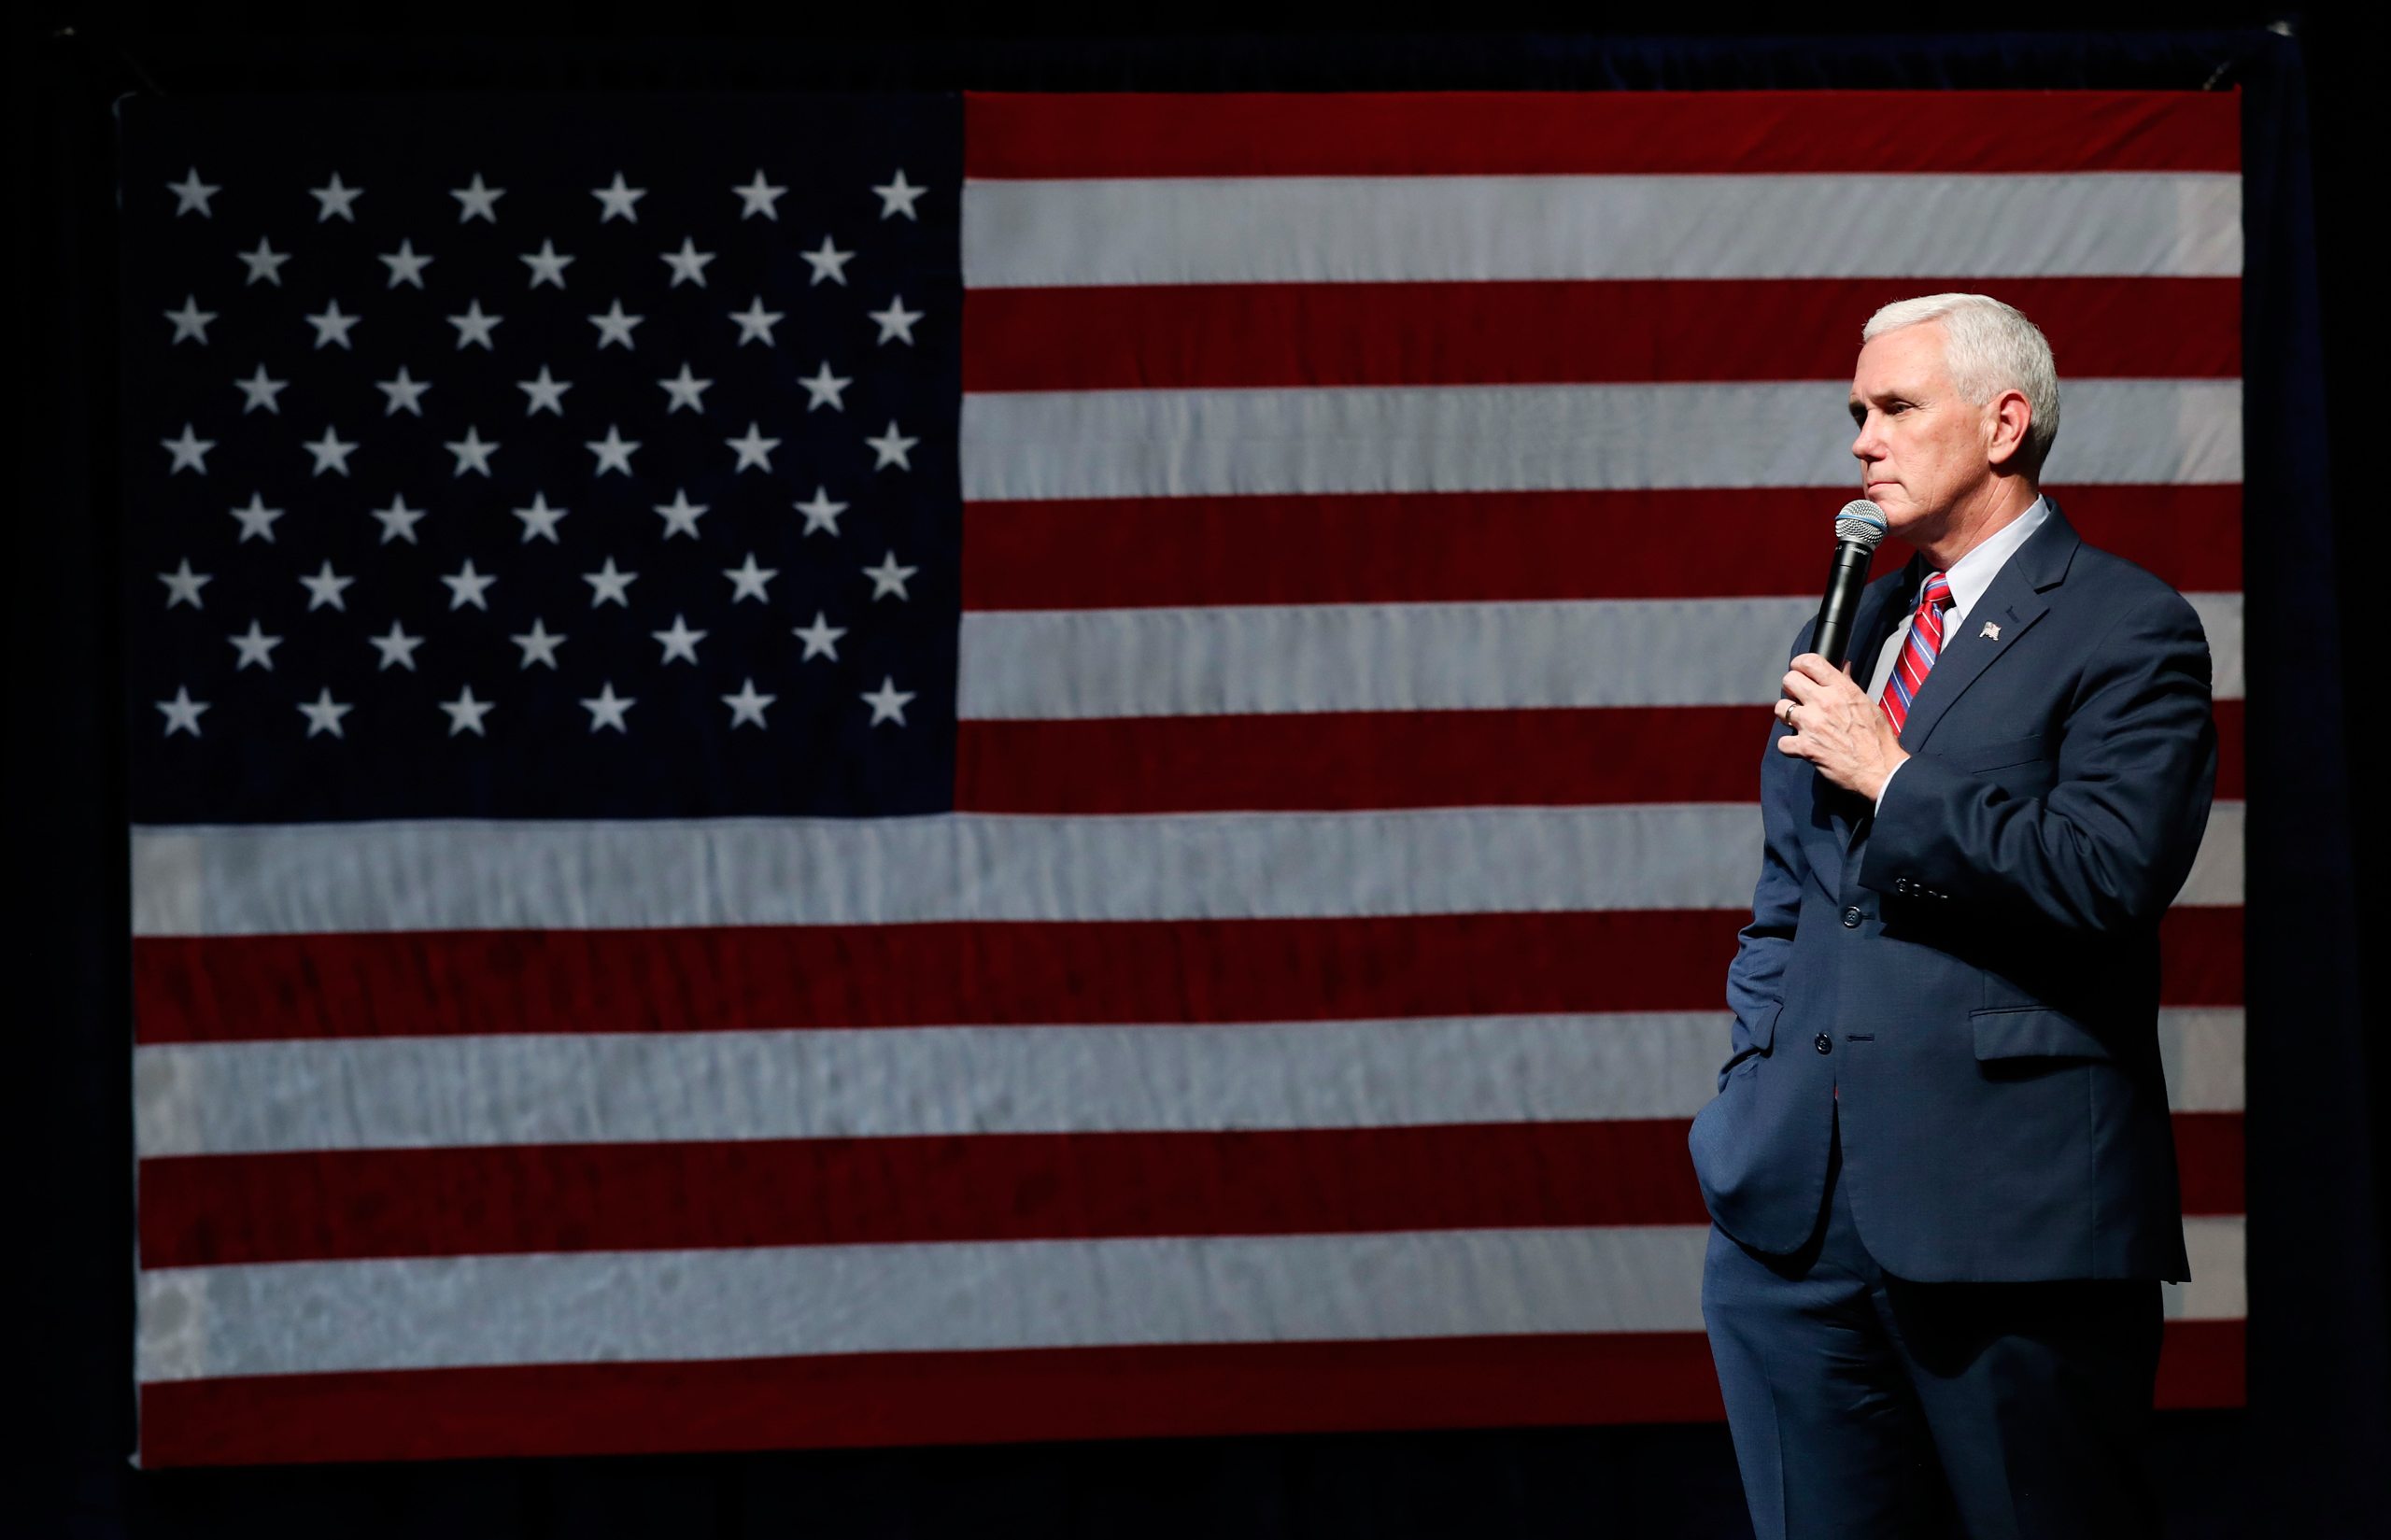 Republican vice presidential candidate Indiana Gov. Mike Pence speaks during a campaign rally in Newton, Iowa, on Oct. 11, 2016.